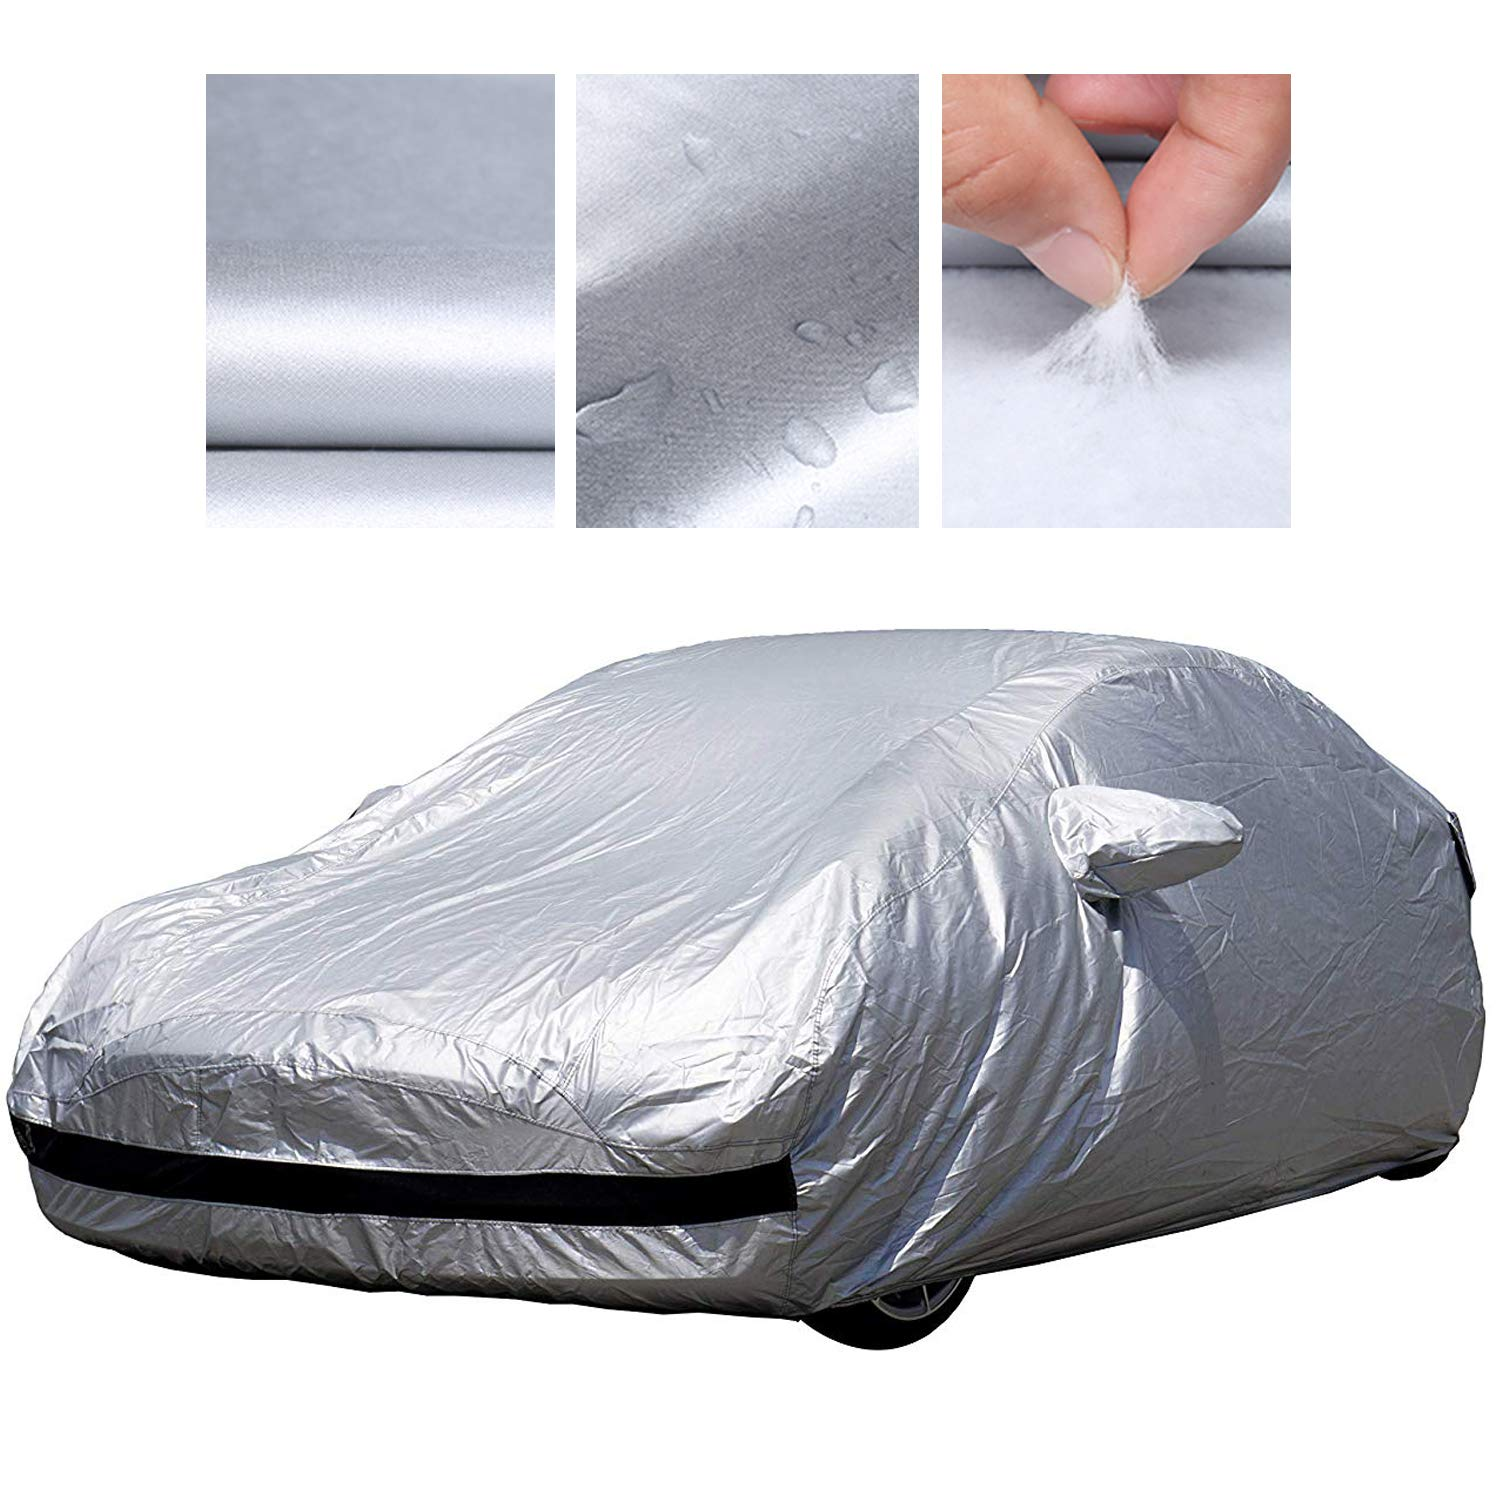 Charge Port for All Tesla Model 3 BASENOR Tesla Model 3 Car Cover Waterproof UV Protection Cover Breathable Outdoor Indoor with Ventilated Mesh